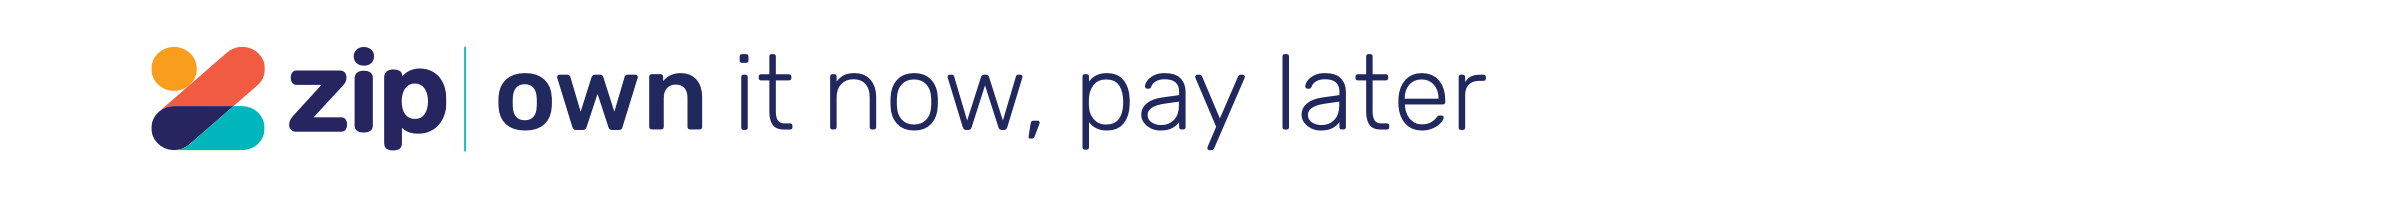 zip-pay-custom-banner-strip-white-transparent.png